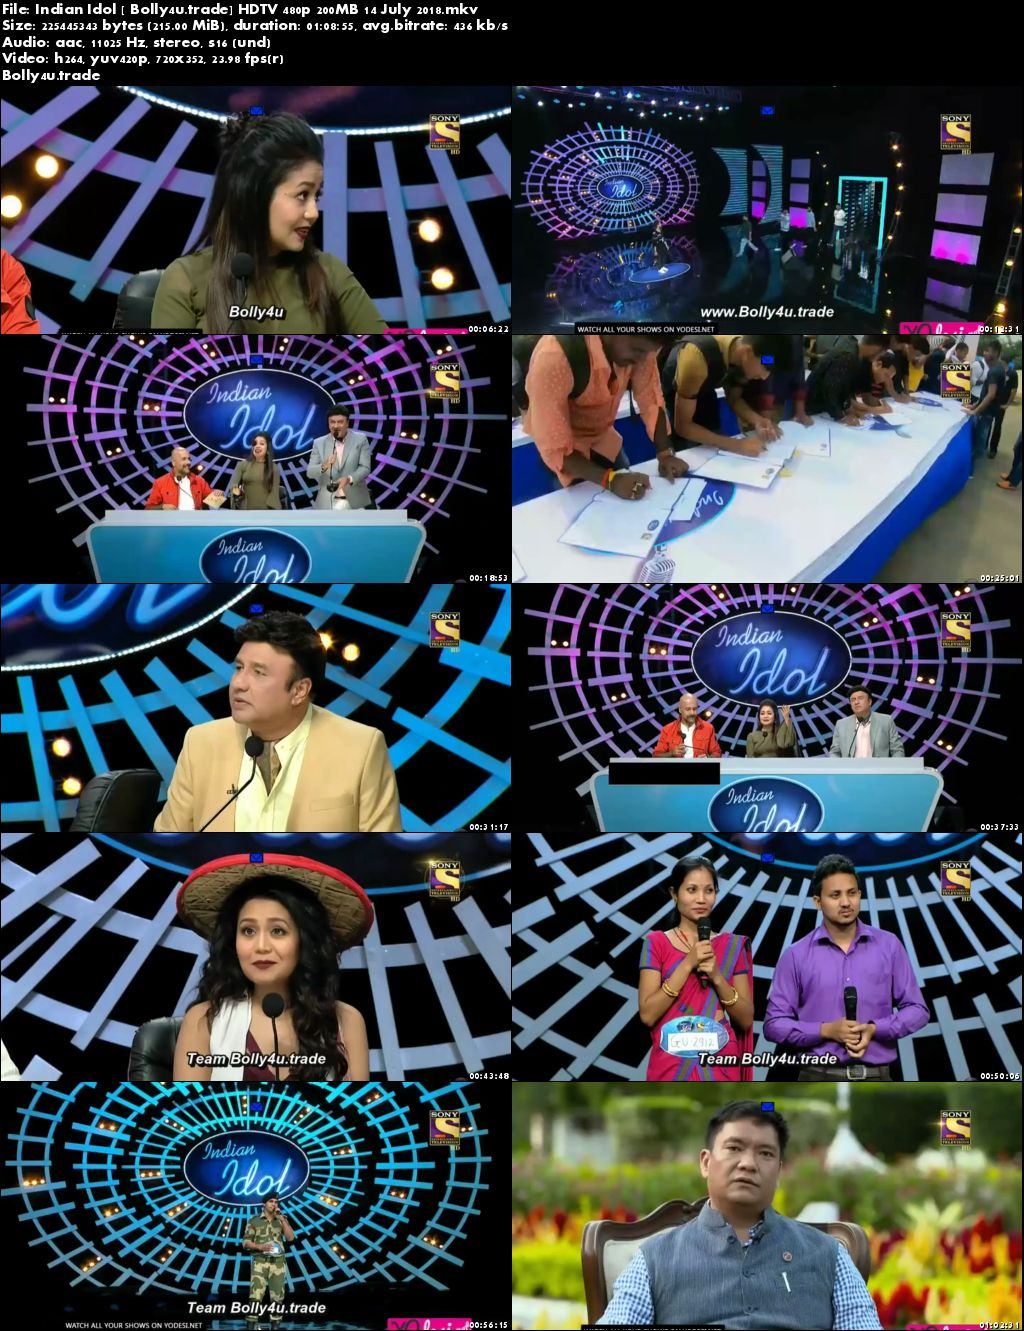 Indian Idol 2018 HDTV 480p 200MB 14 July 2018 Download